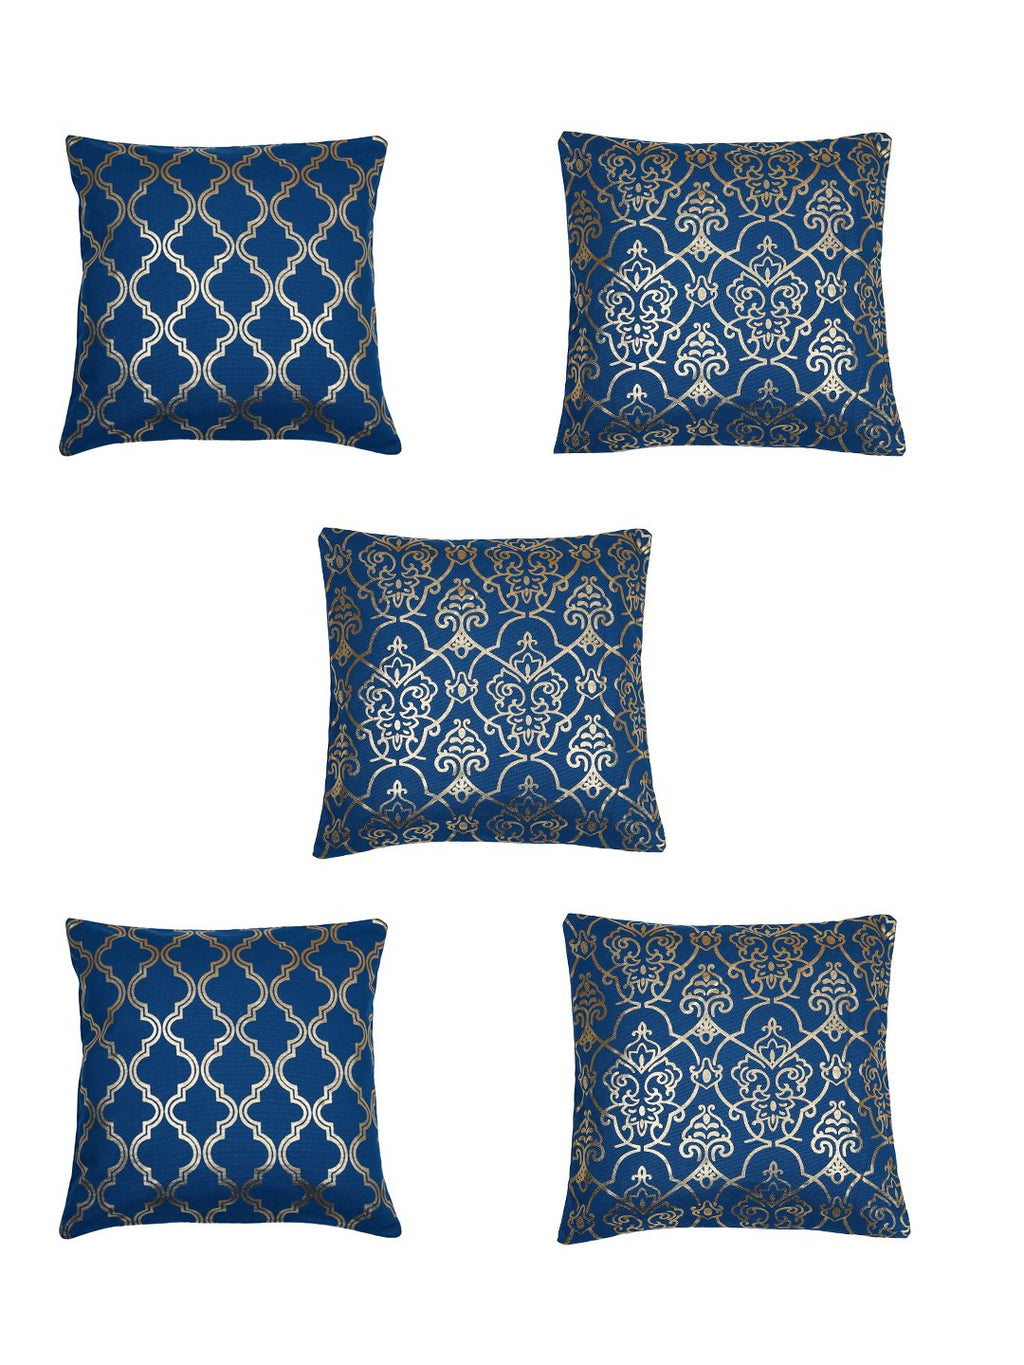 Handcrafted Set of 5 Blue Gold Foil Abstract Cushion Cover